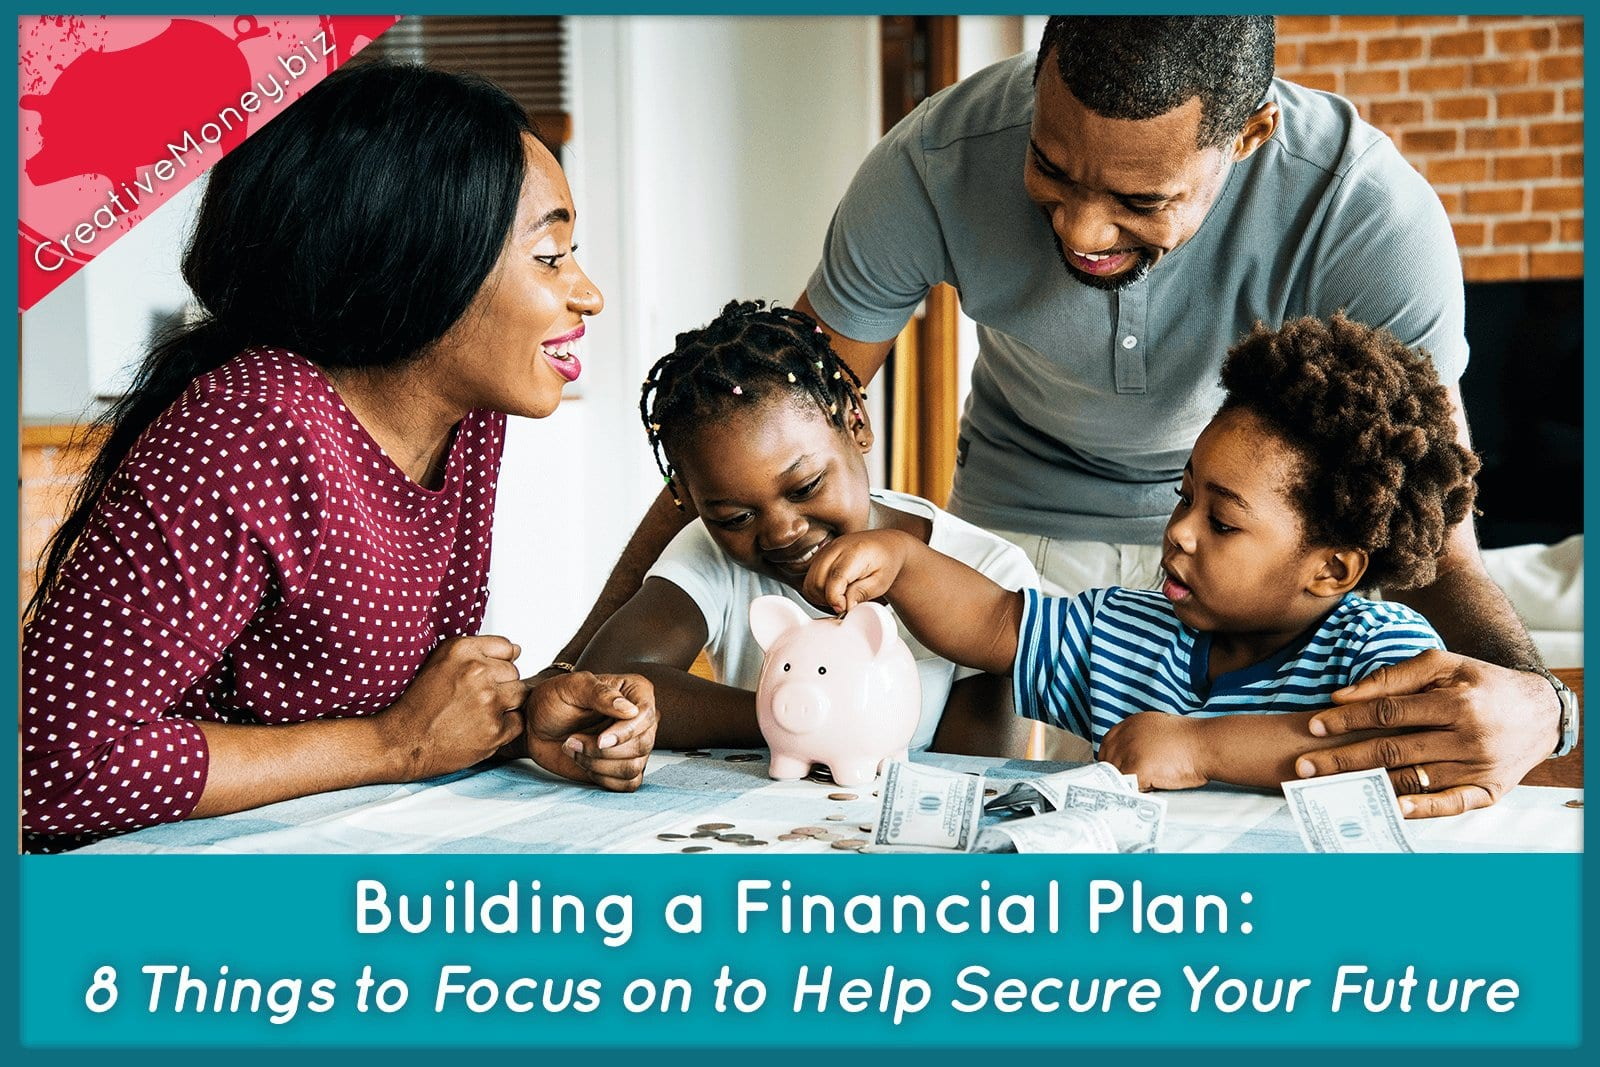 Building a Financial Plan: 8 Things to Focus on to Help Secure Your Future